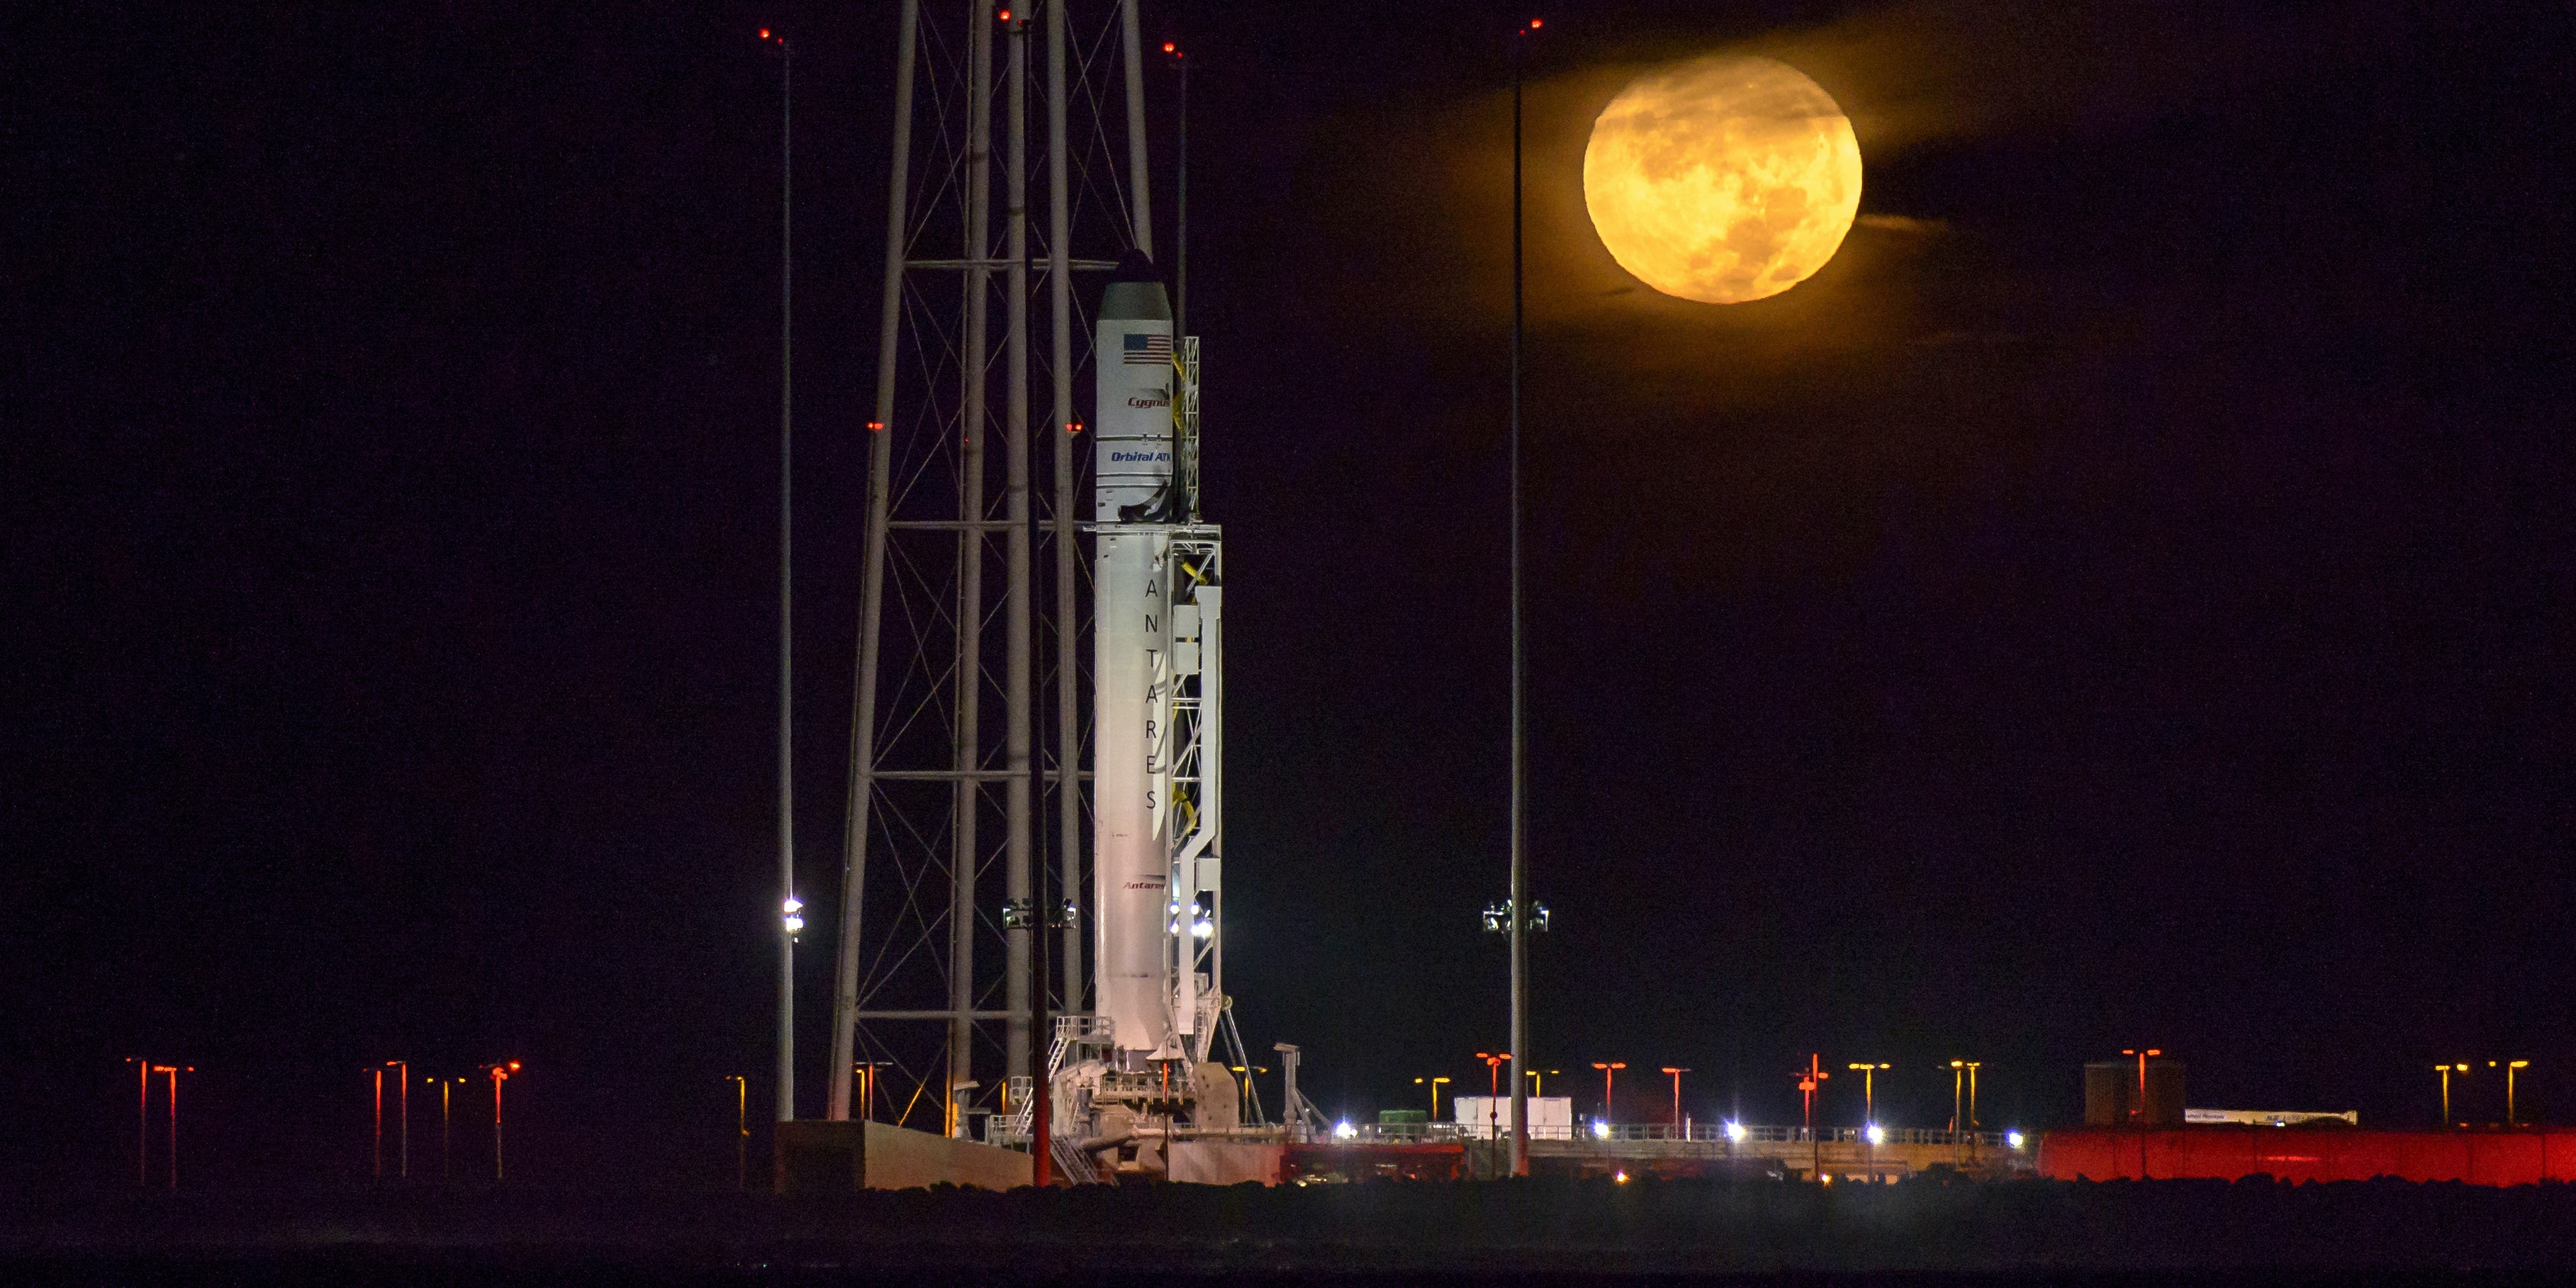 The Orbital ATK Antares rocket is ready to take from Wallops Island, VA on Sunday, October 15.